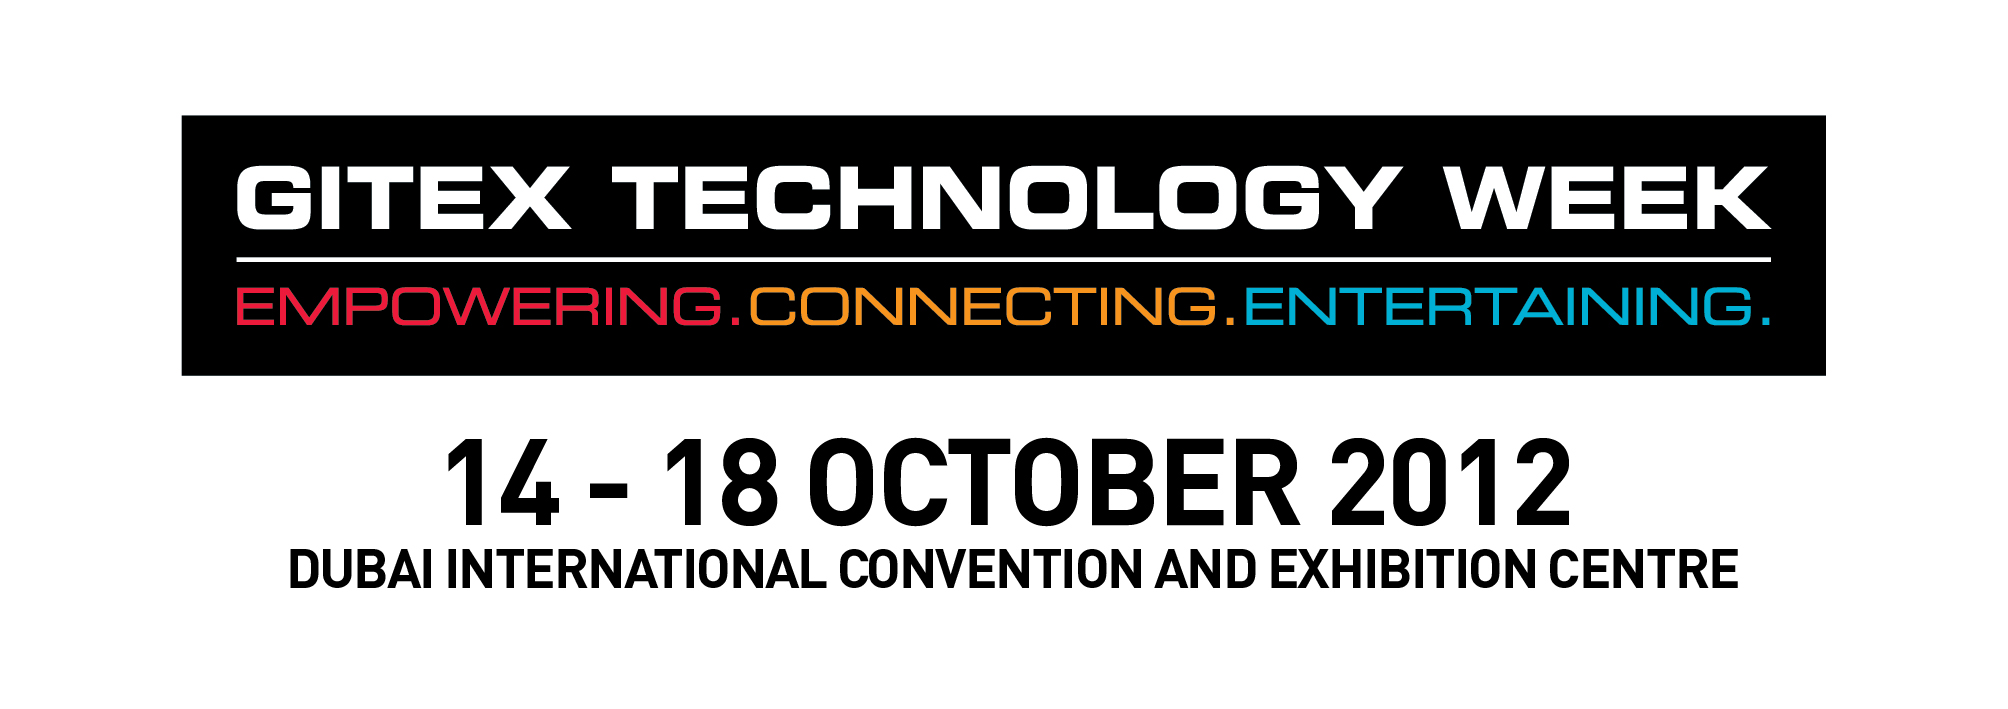 gitex technology week  2012  white1